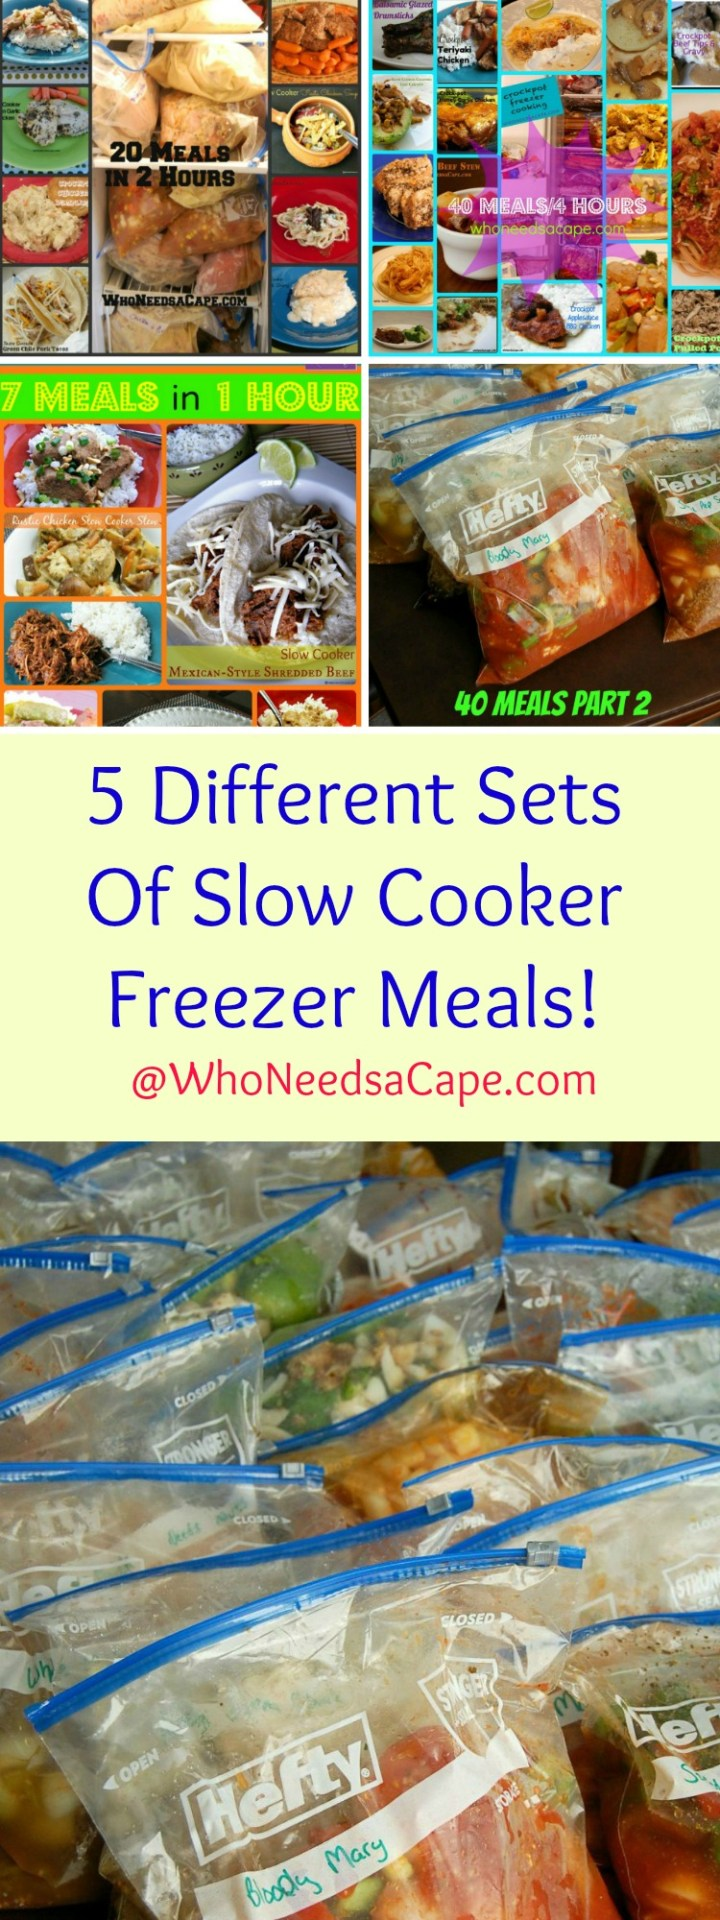 5 Different Sets of Slow Cooker Freezer Meals - Pick which one you'll make 7 Meals, 20 Meals, 30 Meals and 2 sets of 40 Meals - a MUST PIN So many ideas and choices